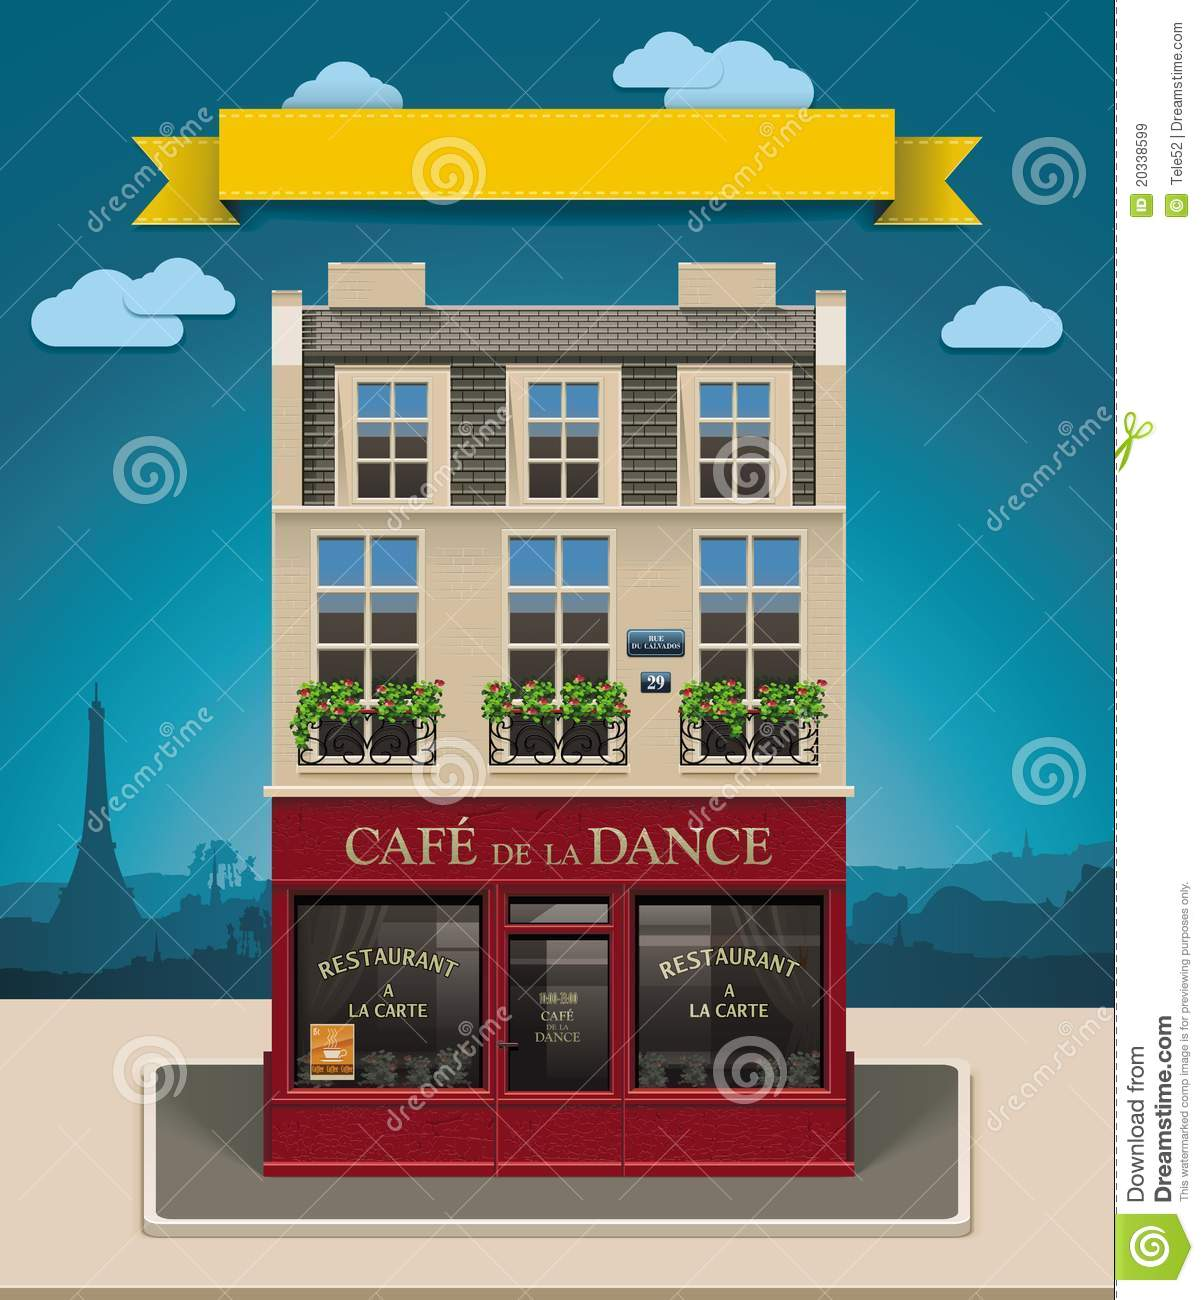 Cafe Building Clipart Style cafe building.